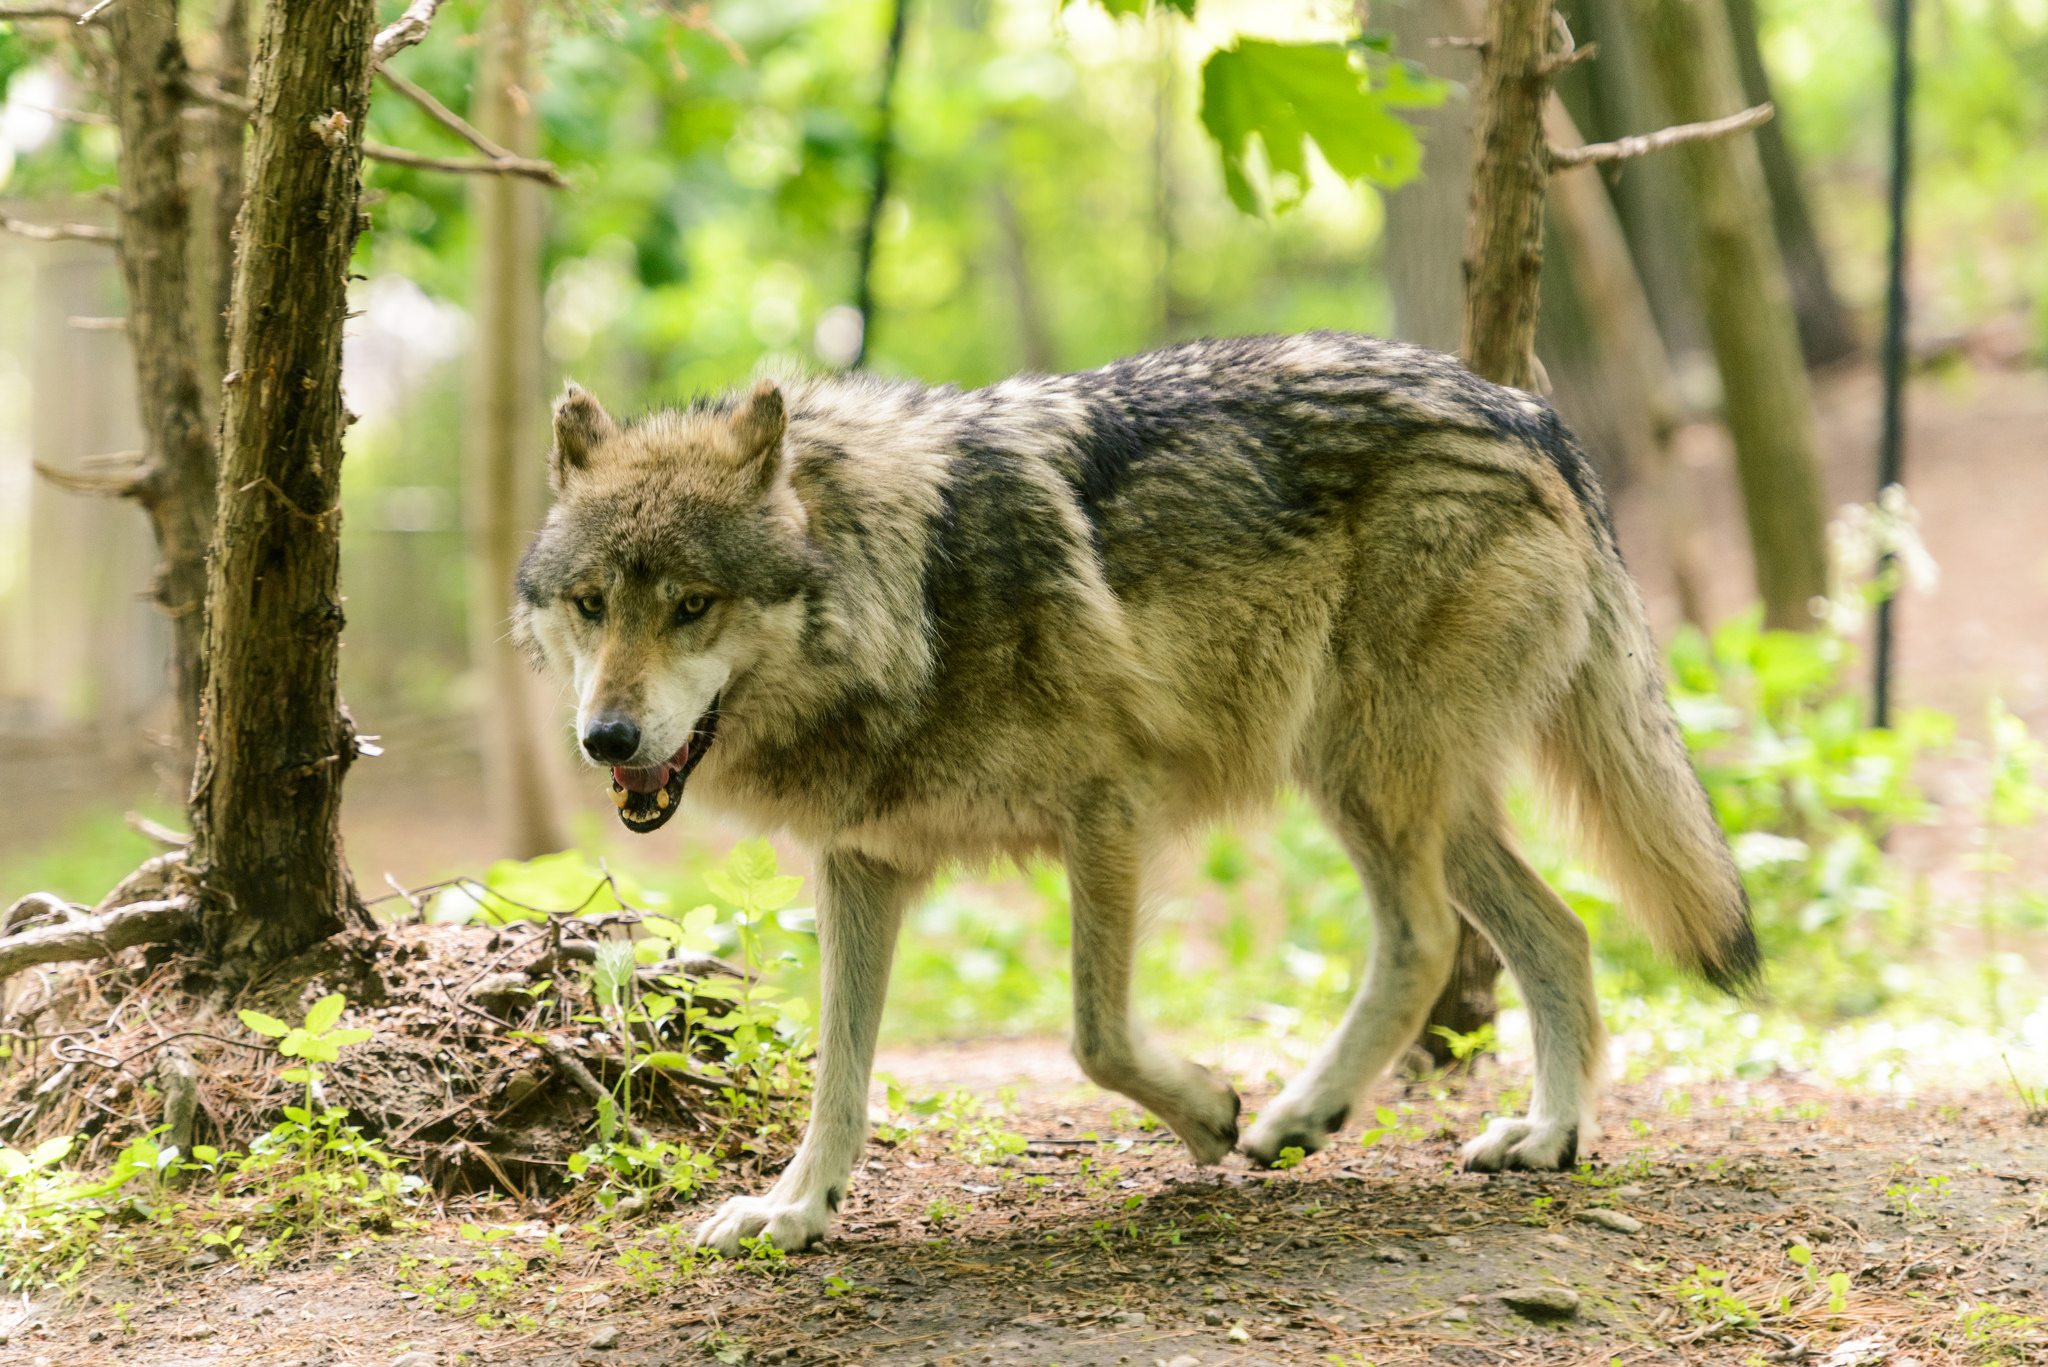 Dept. of Fish and Wildlife: deciding whether Oregon's gray wolves keep endangered species status